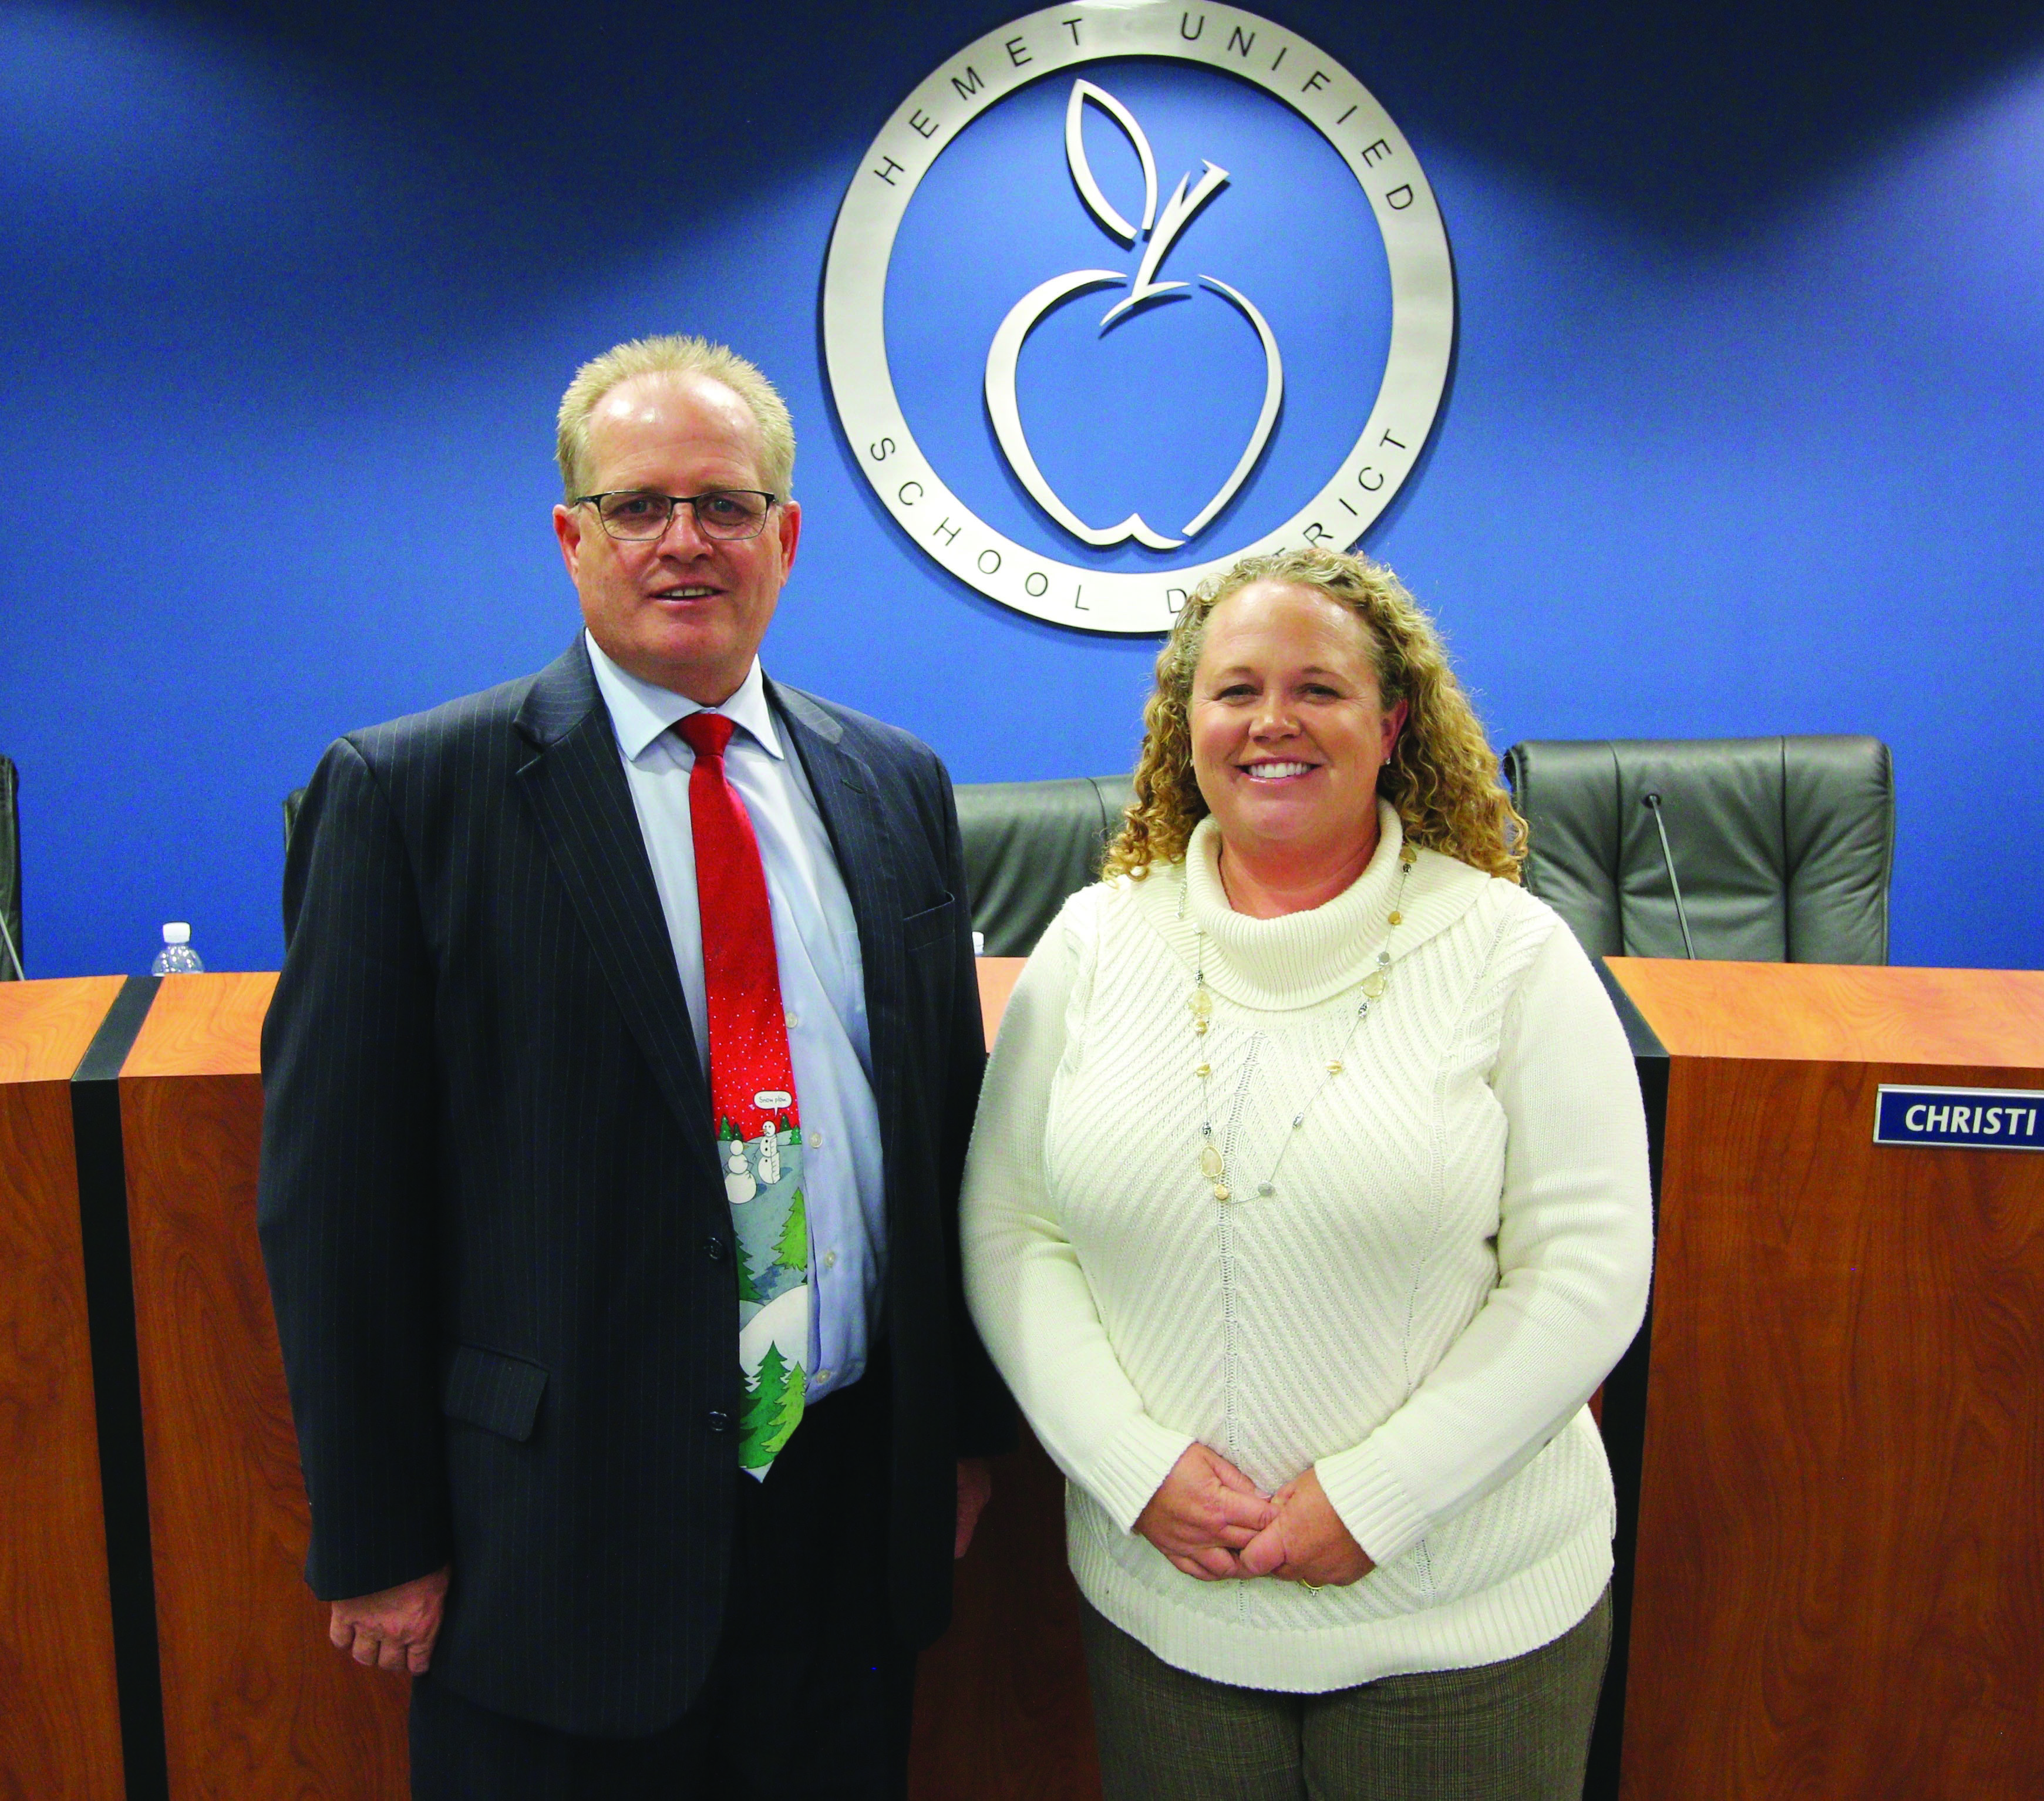 HUSD welcomes new Board President and VP